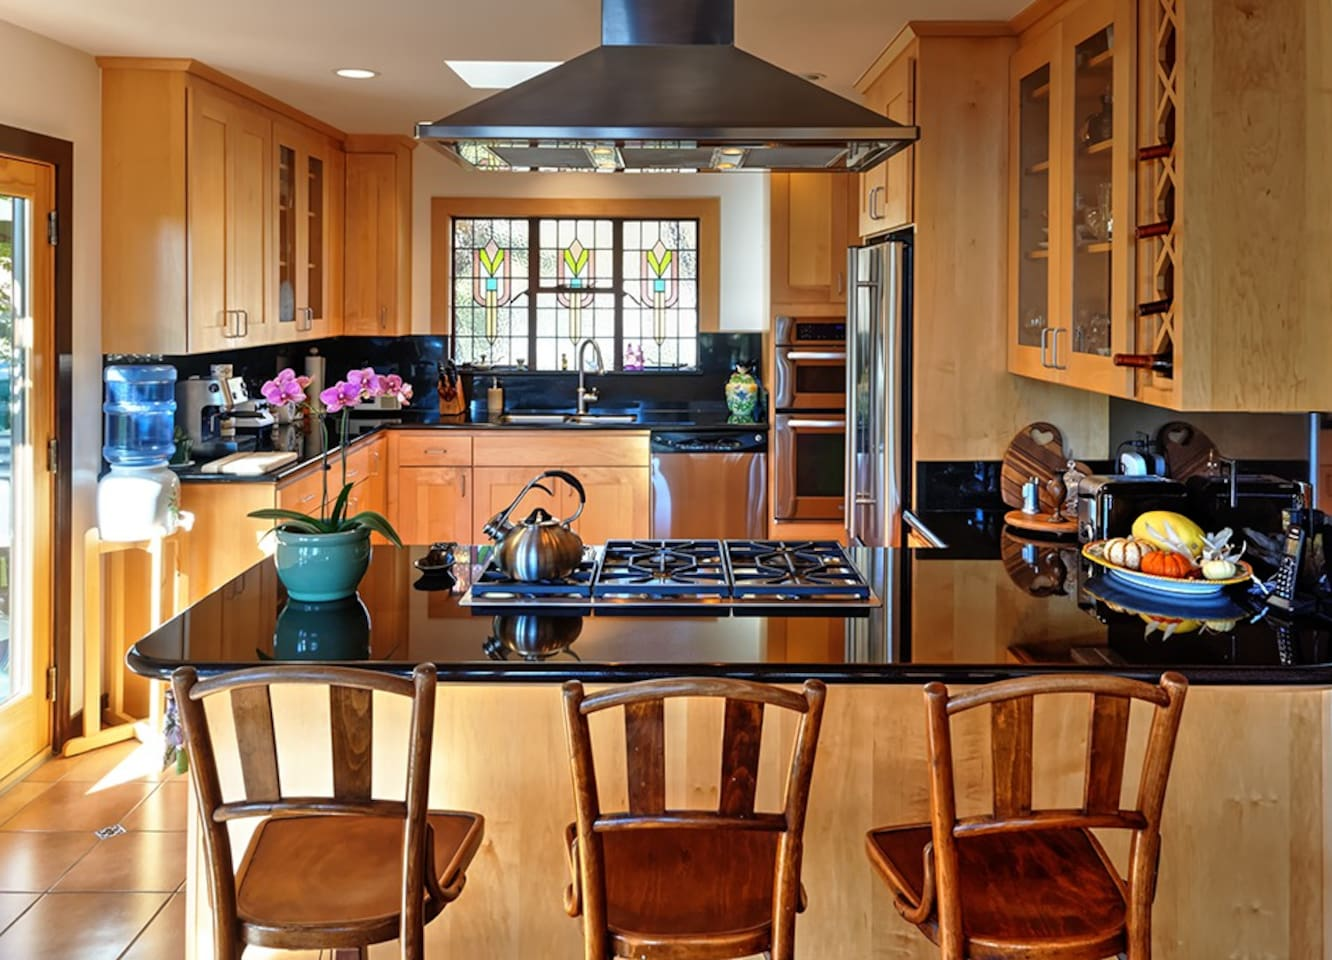 Gourmet kitchen with breakfast bar and granite countertops